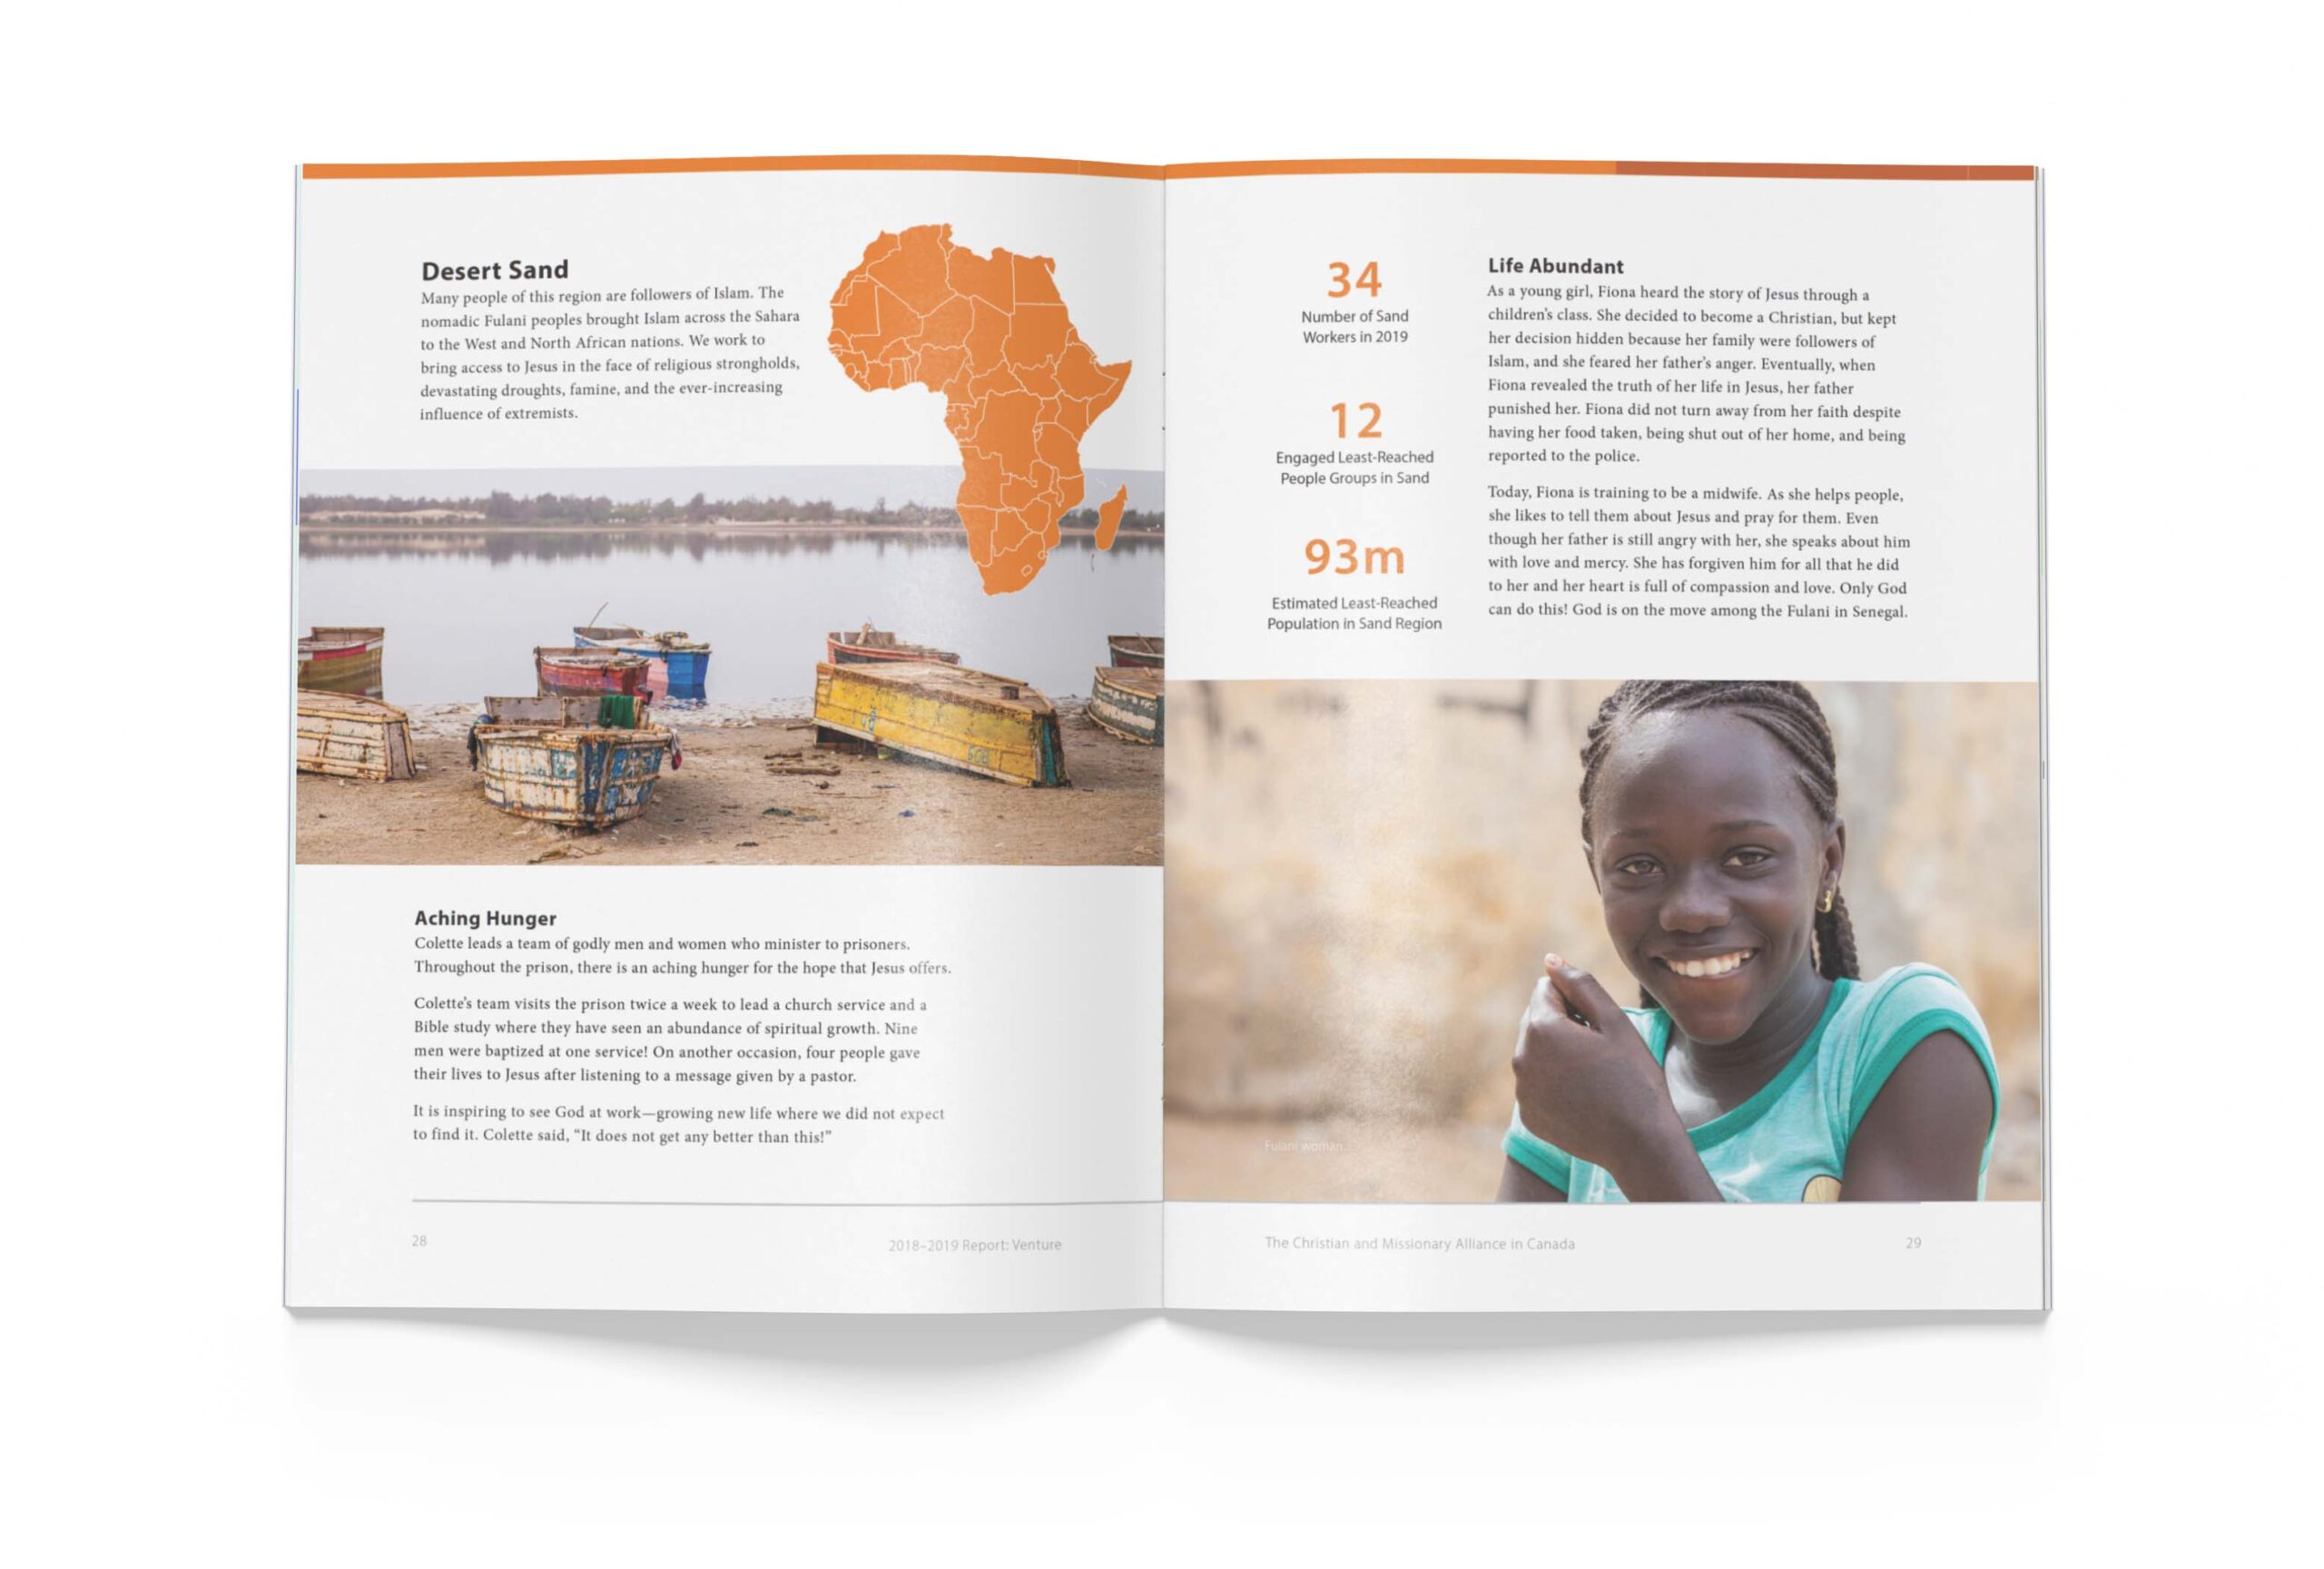 Page 28 of The Alliance Canada 2018-2019 Biannual Report